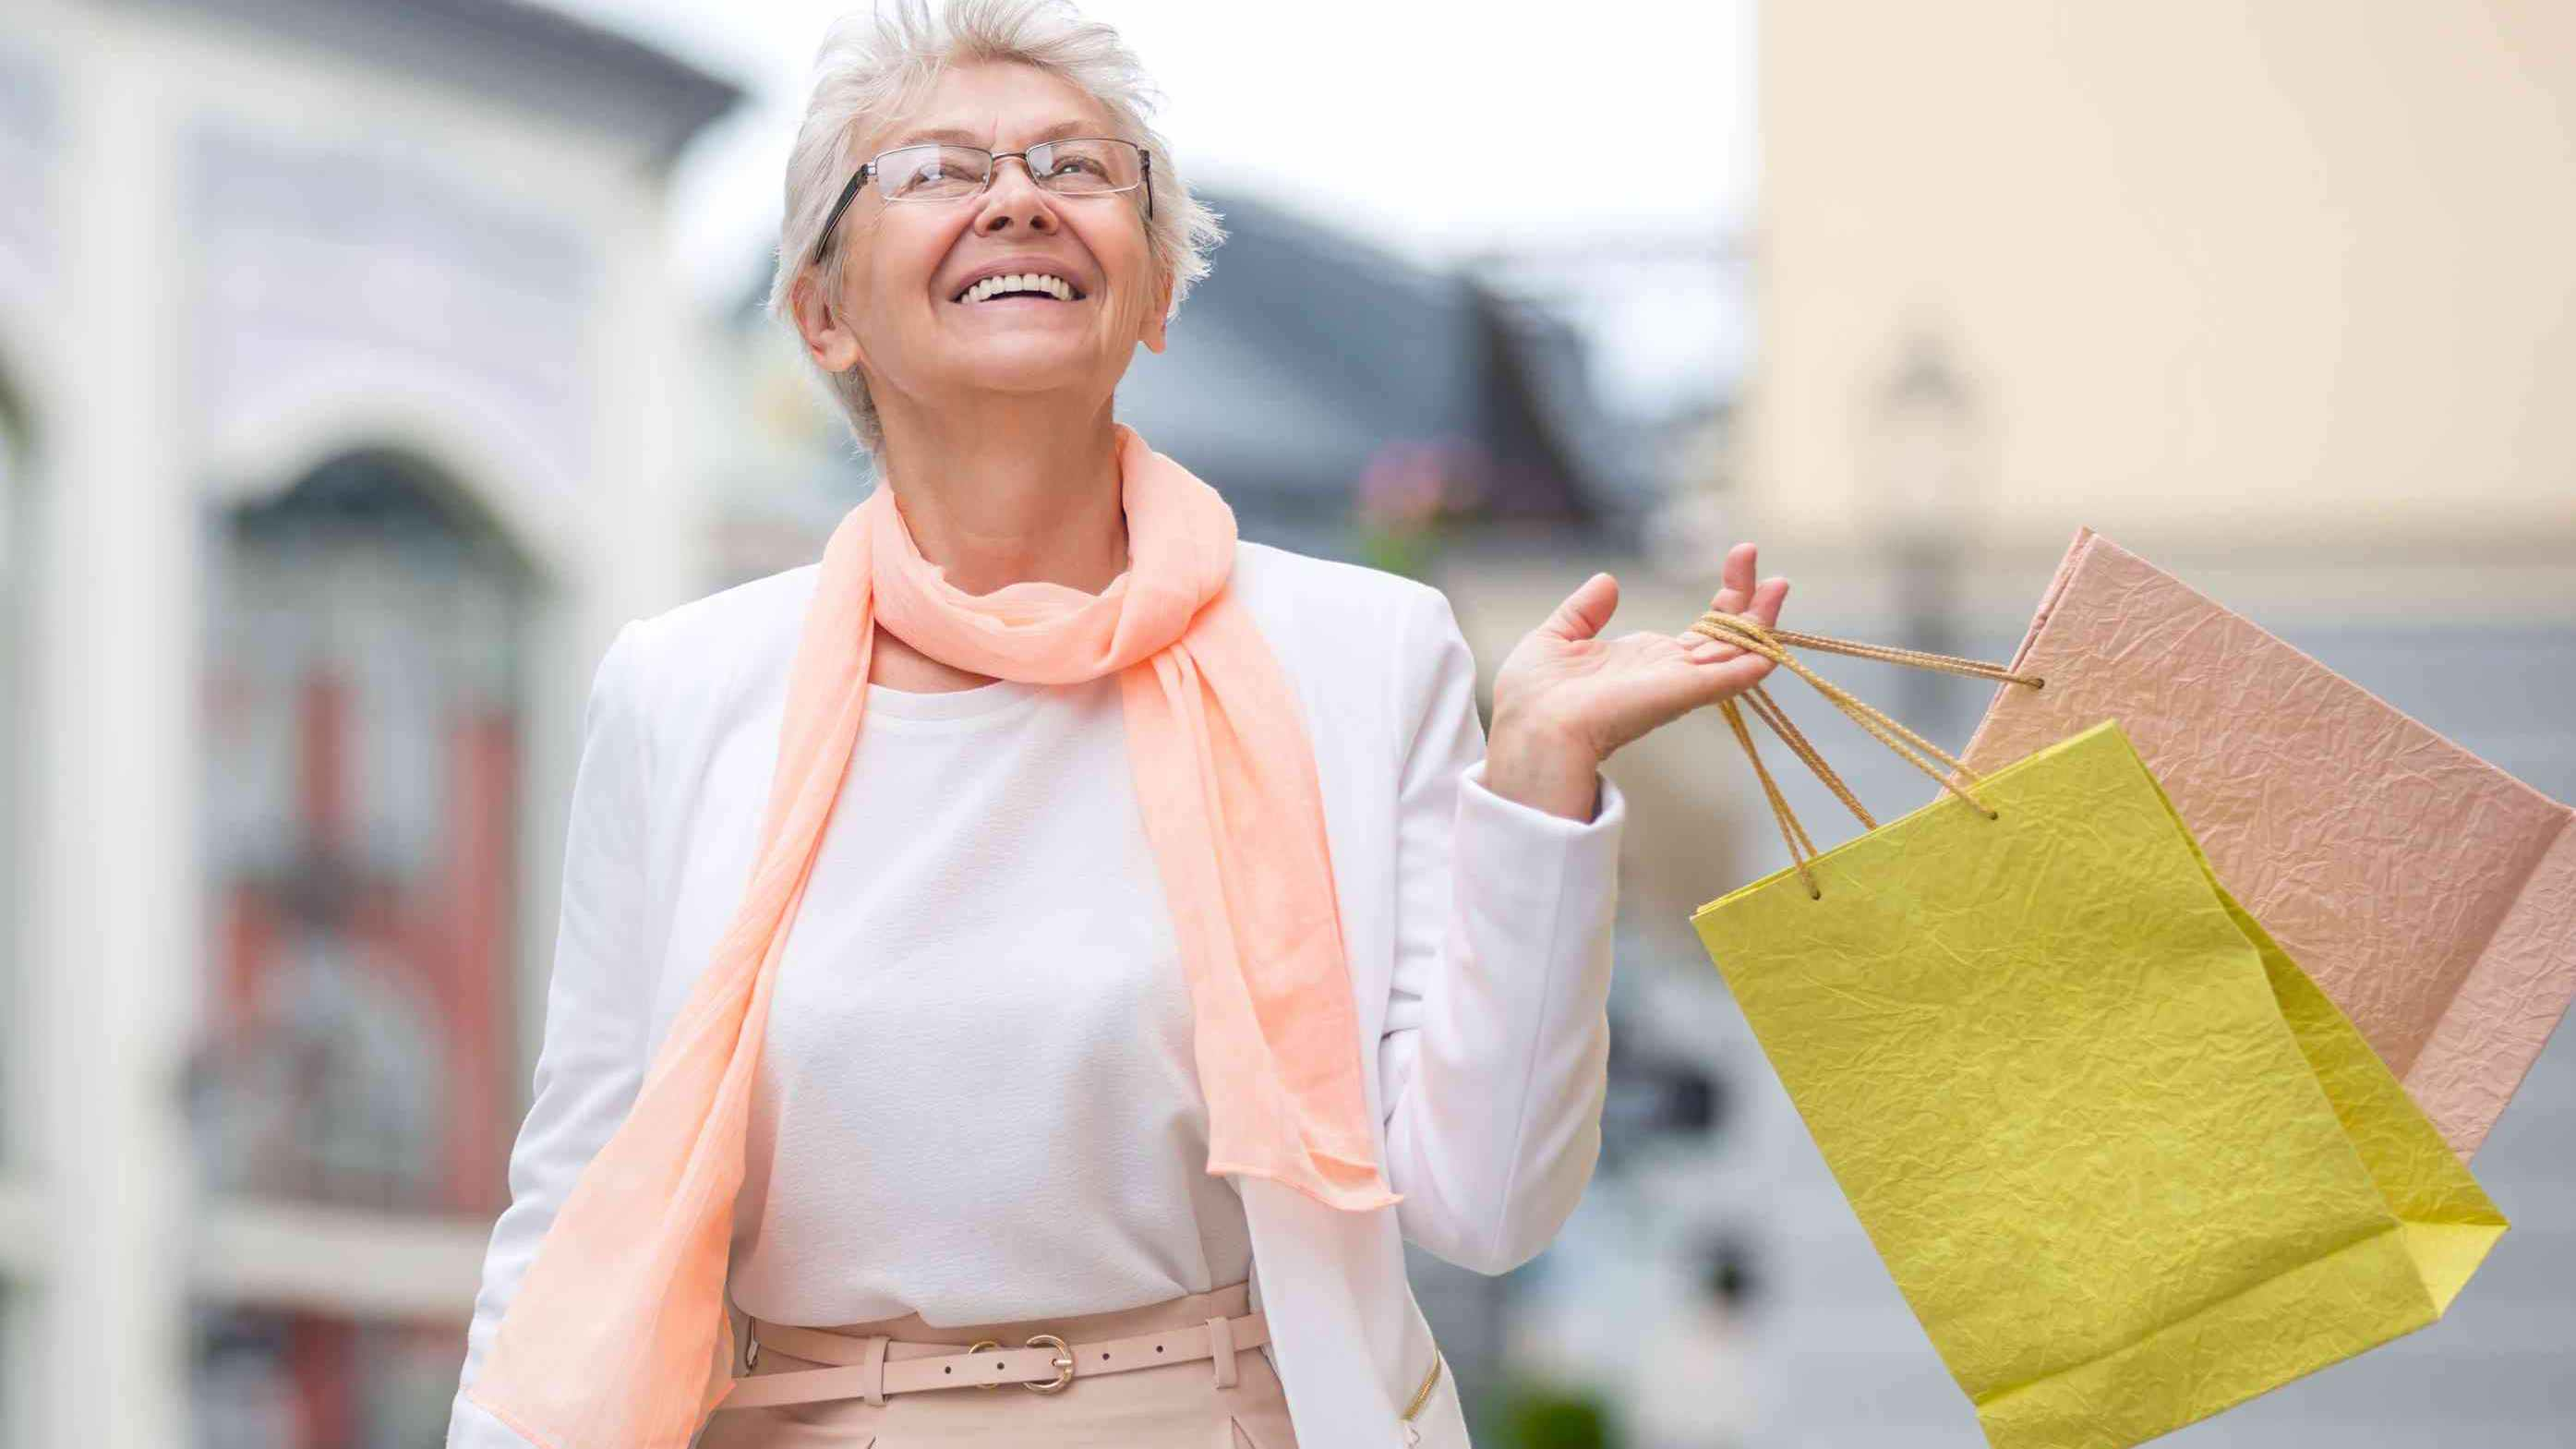 Styling tips for over-60s – be confident in what you wear